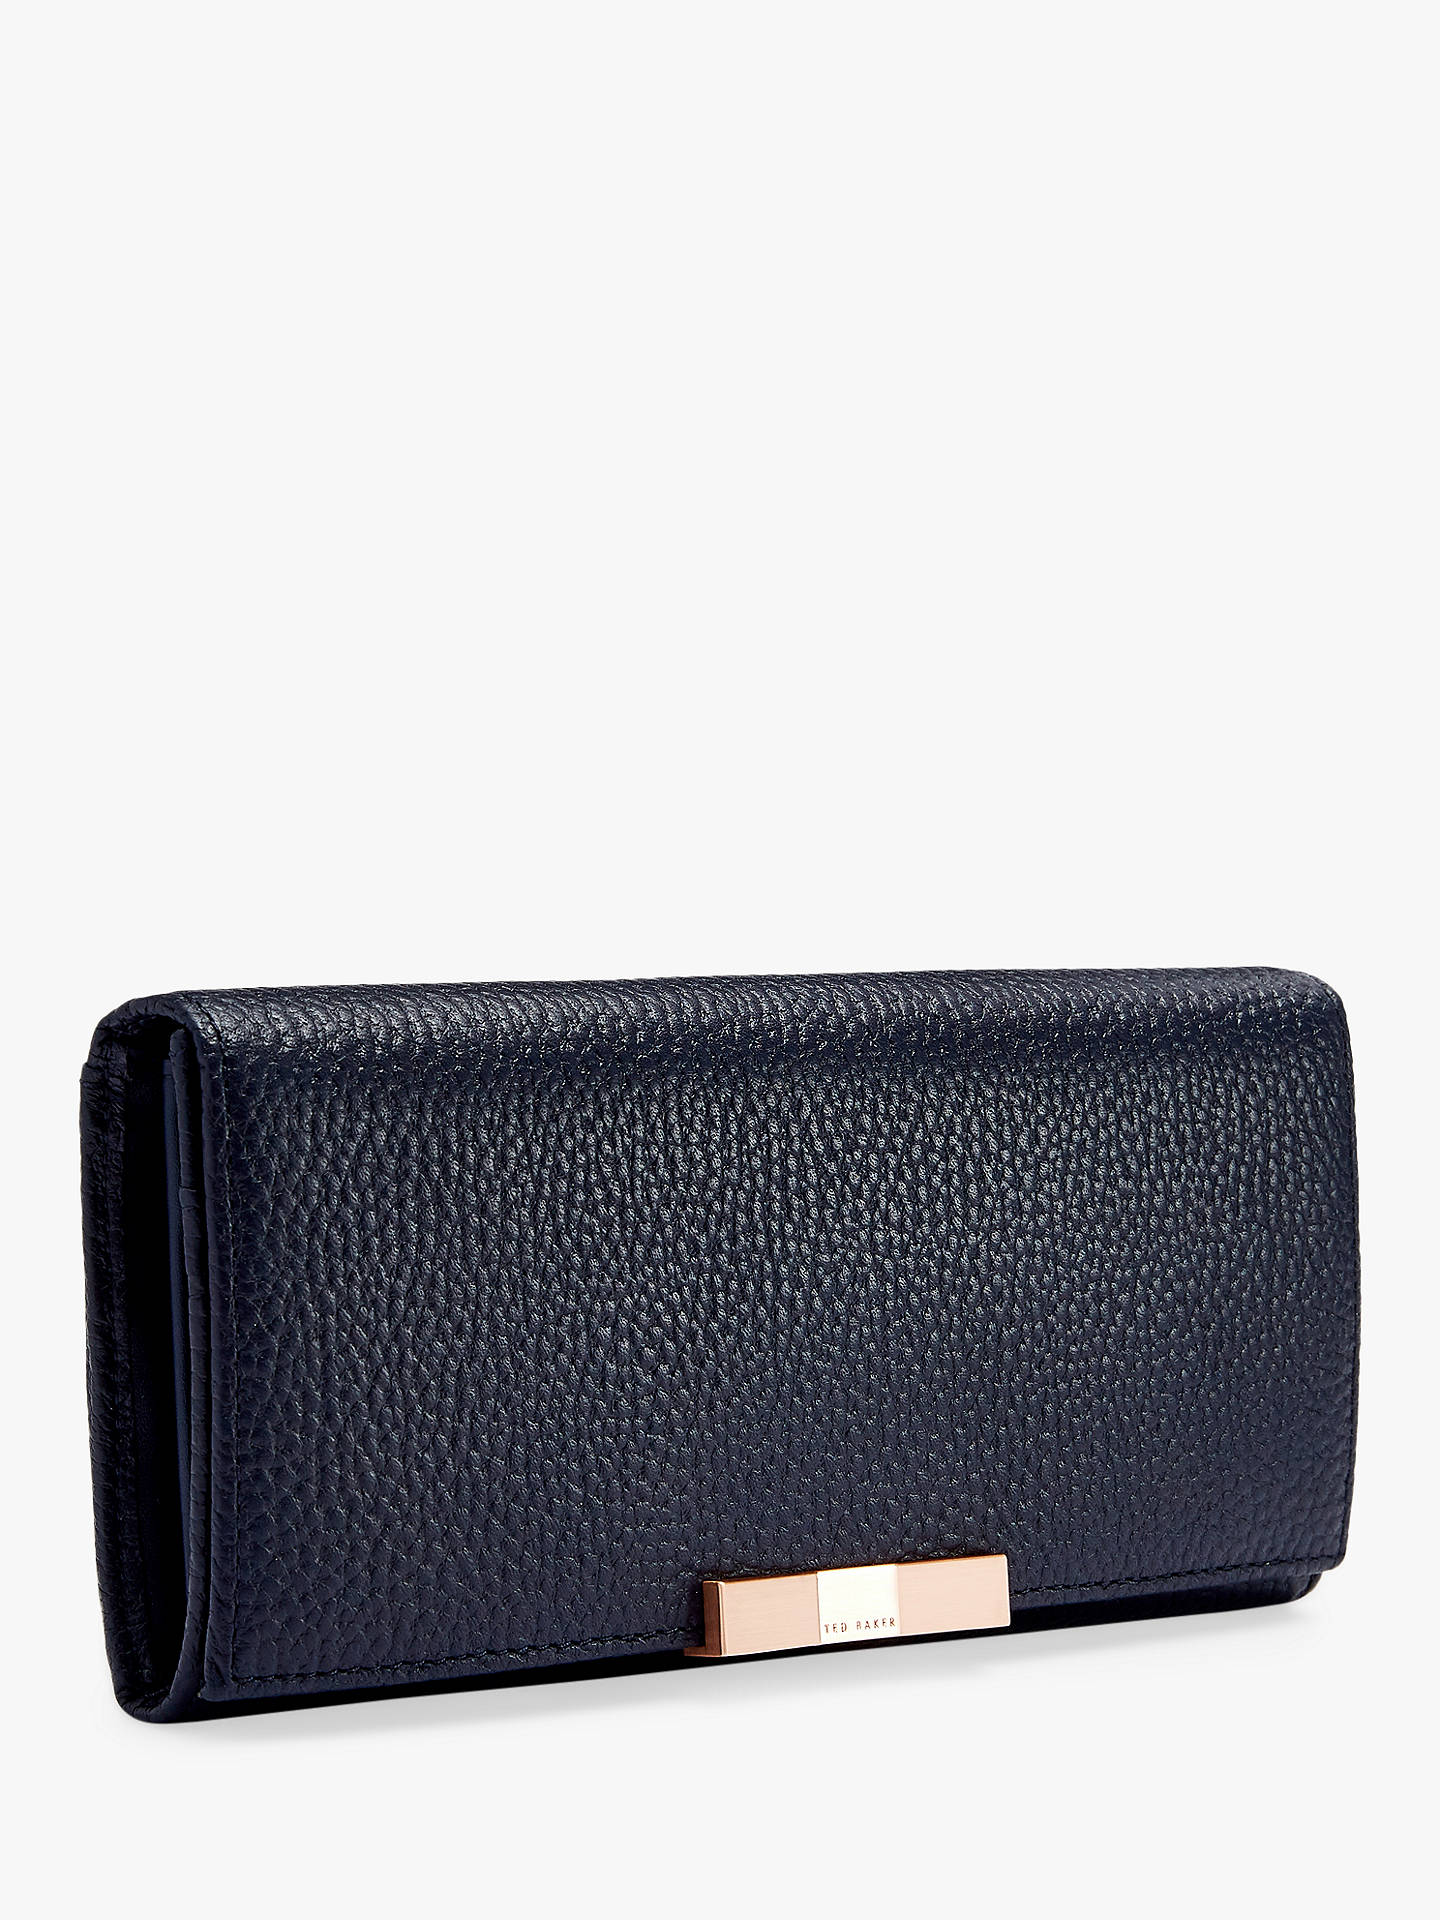 BuyTed Baker Devyn Leather Foldover Purse, Dark Blue Online at johnlewis.com